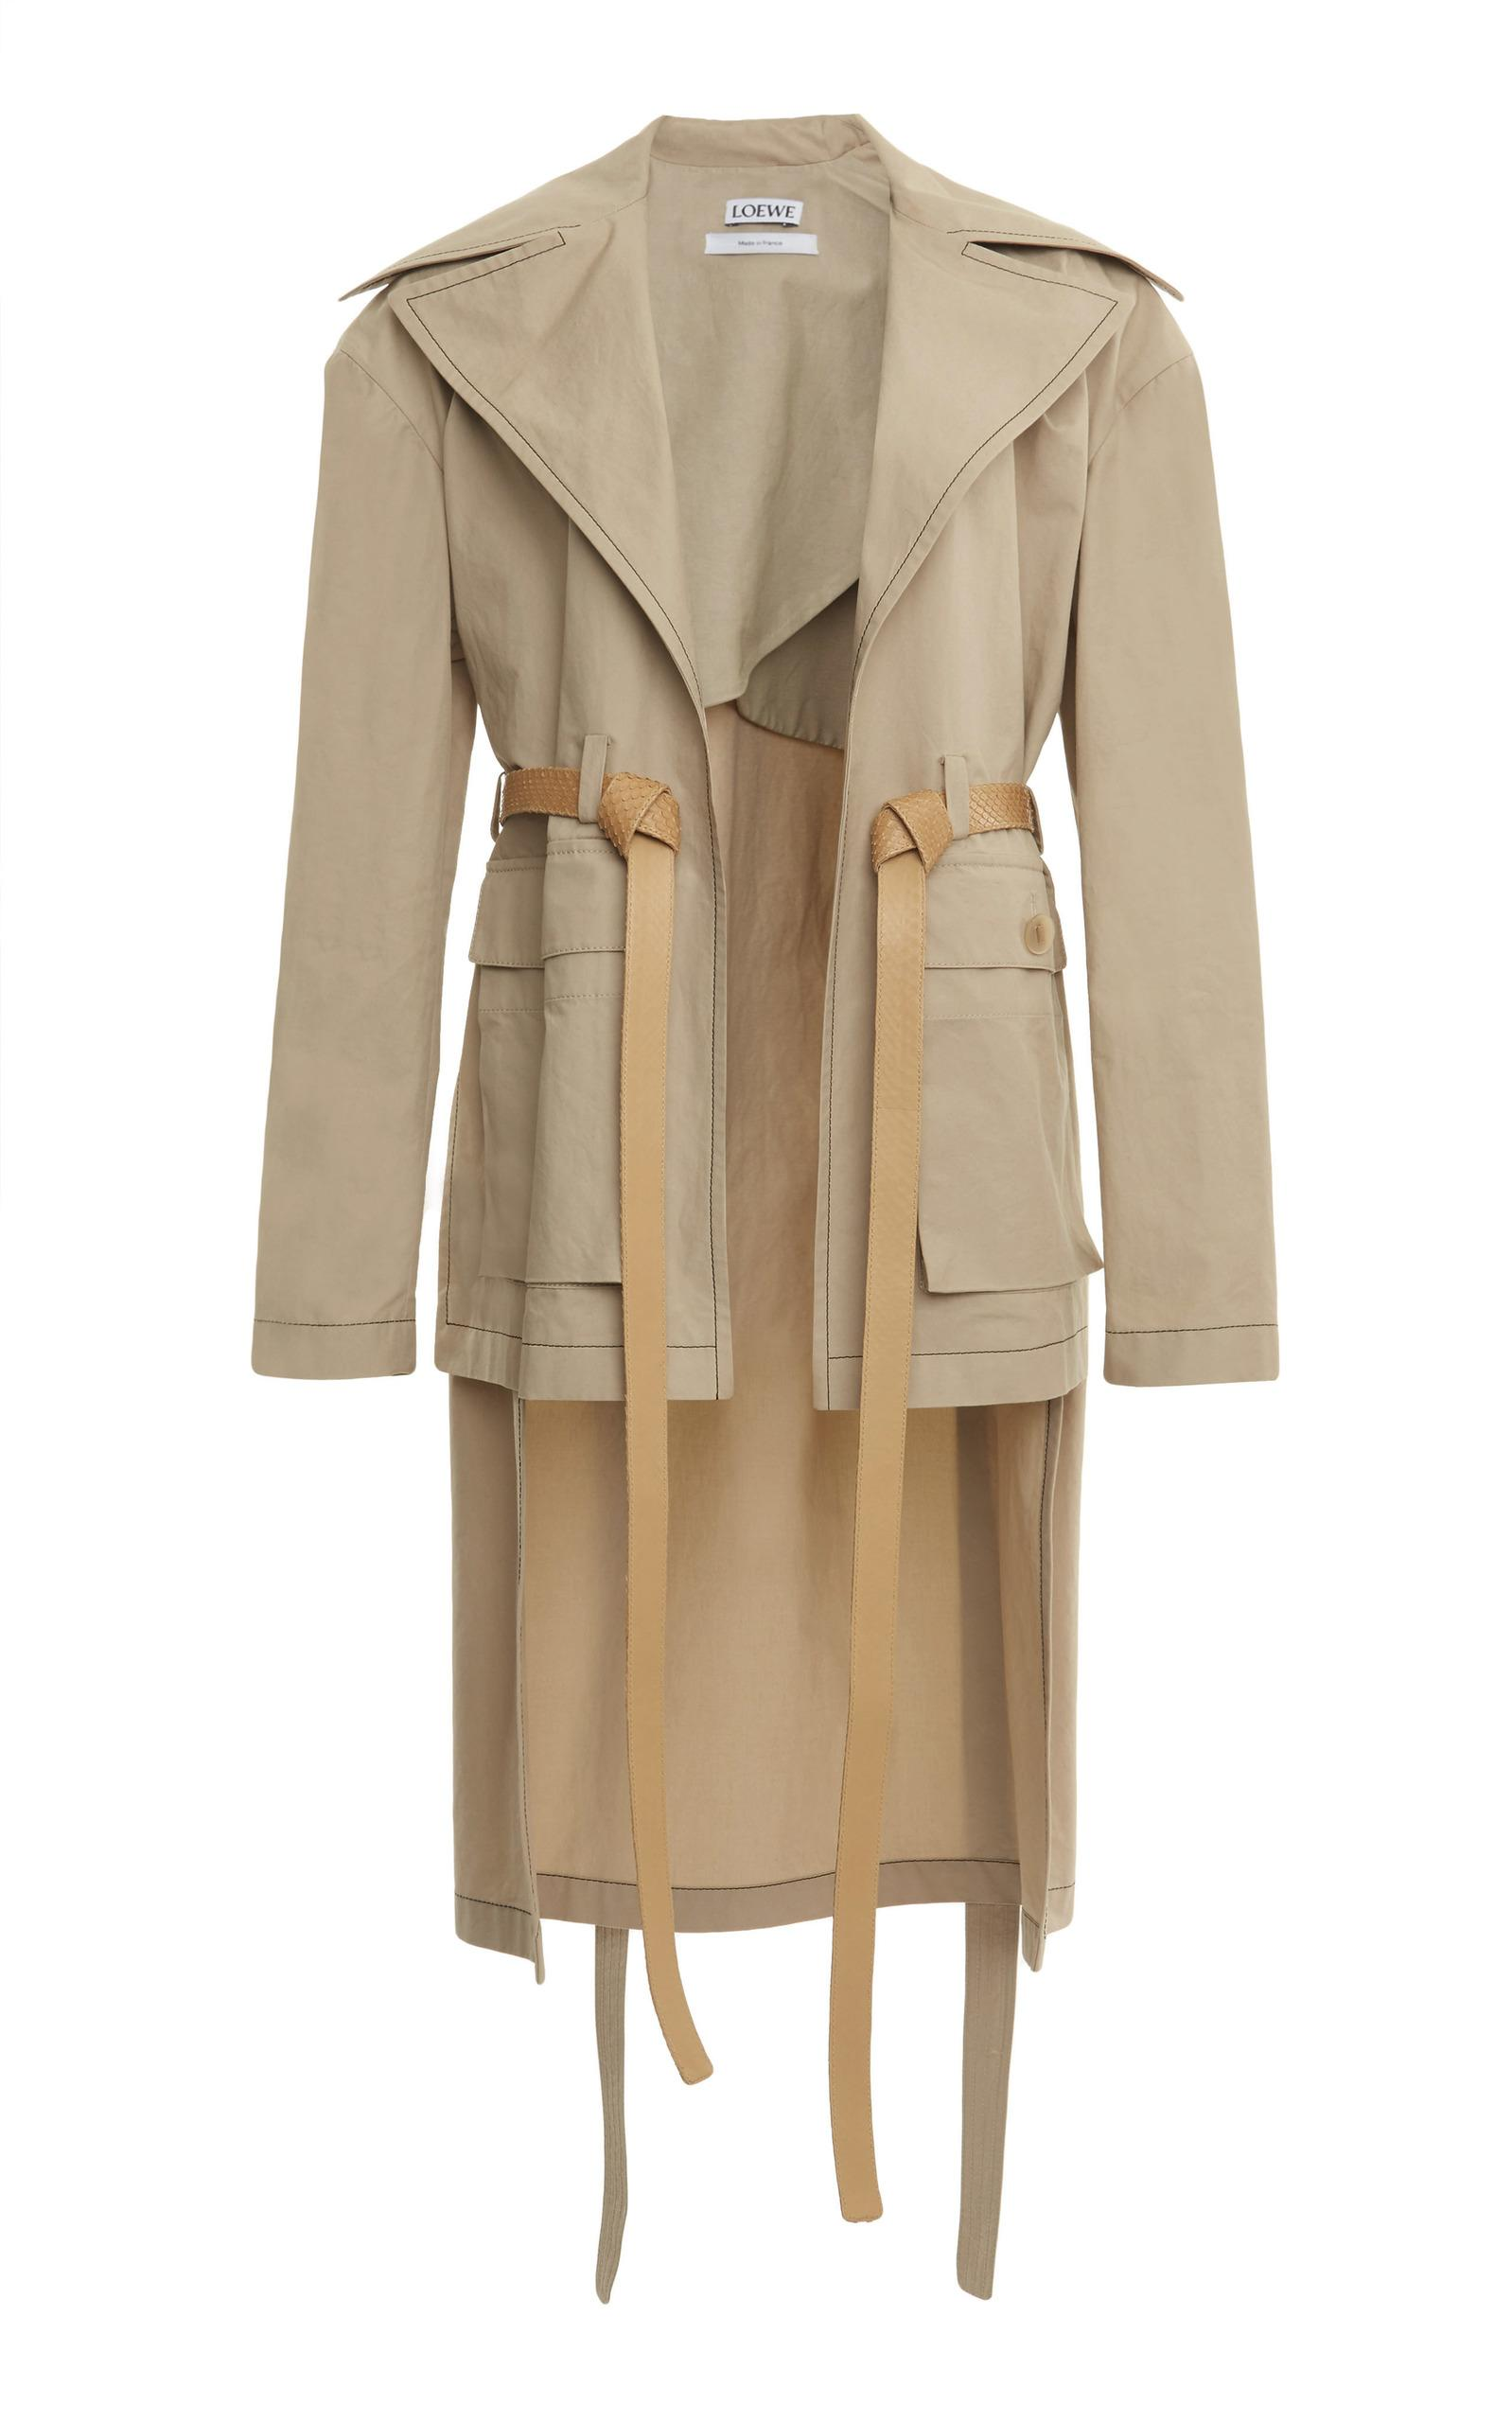 Loewe Patch Pocket Belted Coat In Neutral